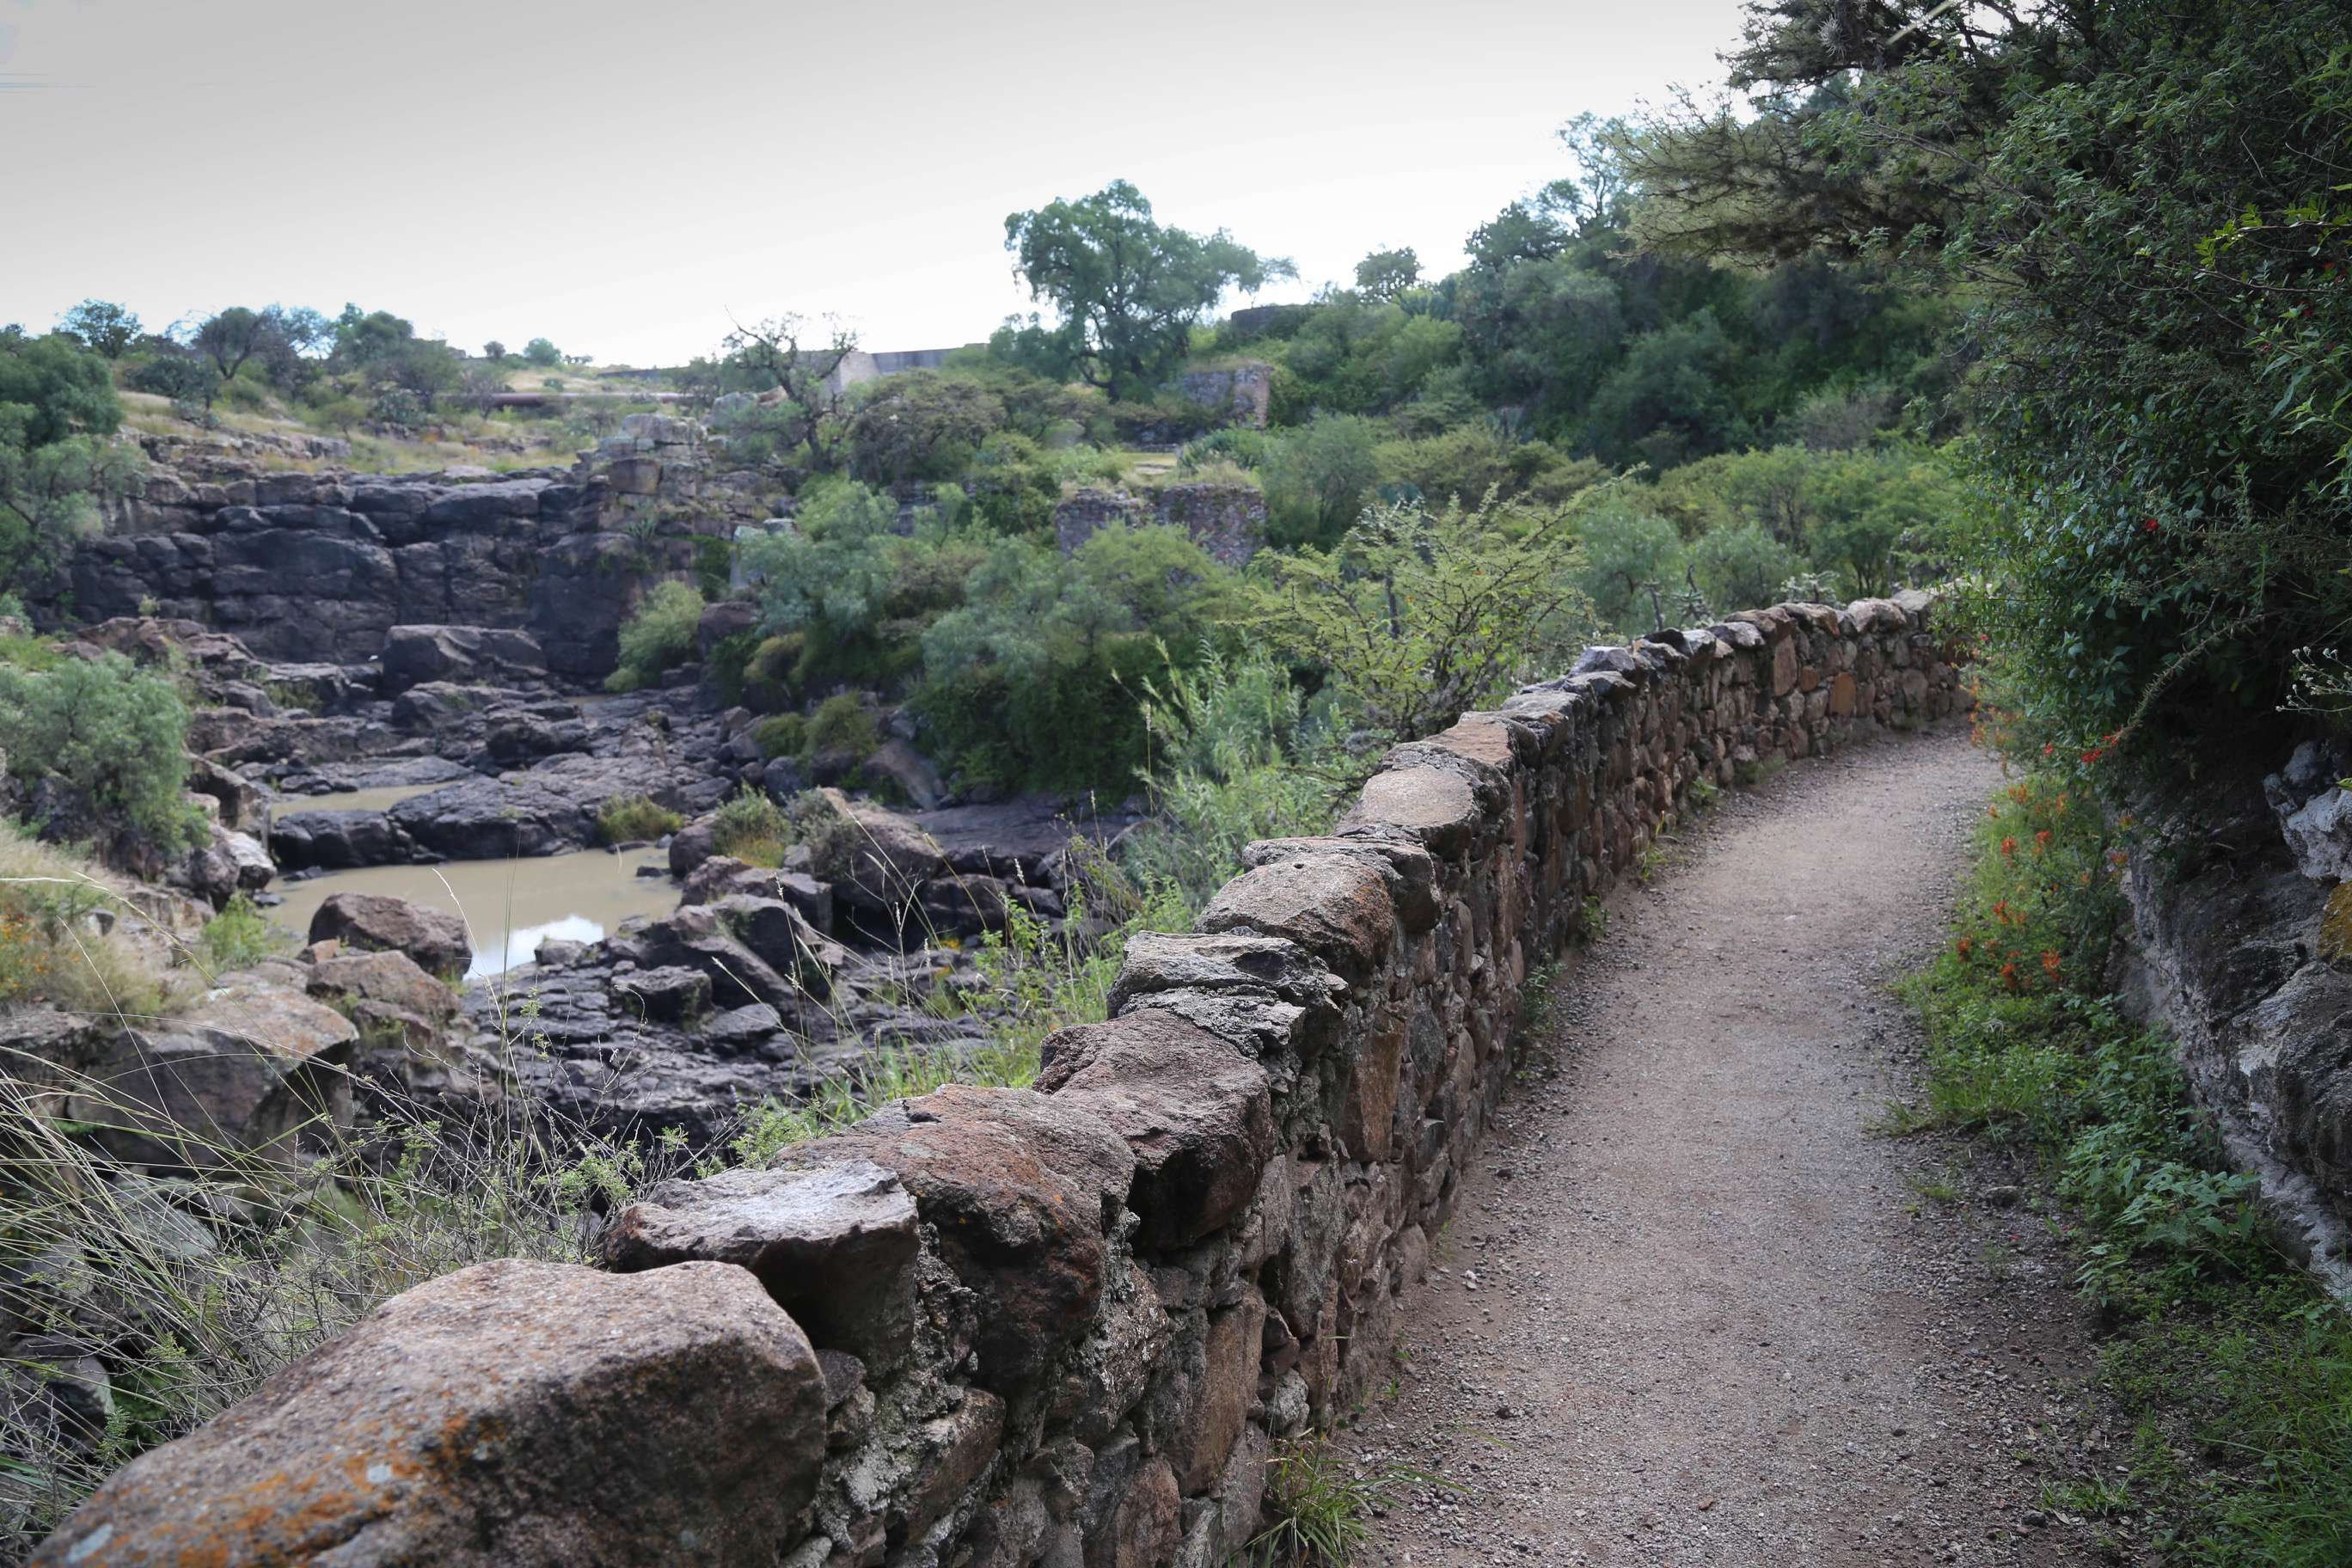 This spot on the trail shows the canyon, and on the rocks below, El Charco occasionally puts on concerts and musical performances.